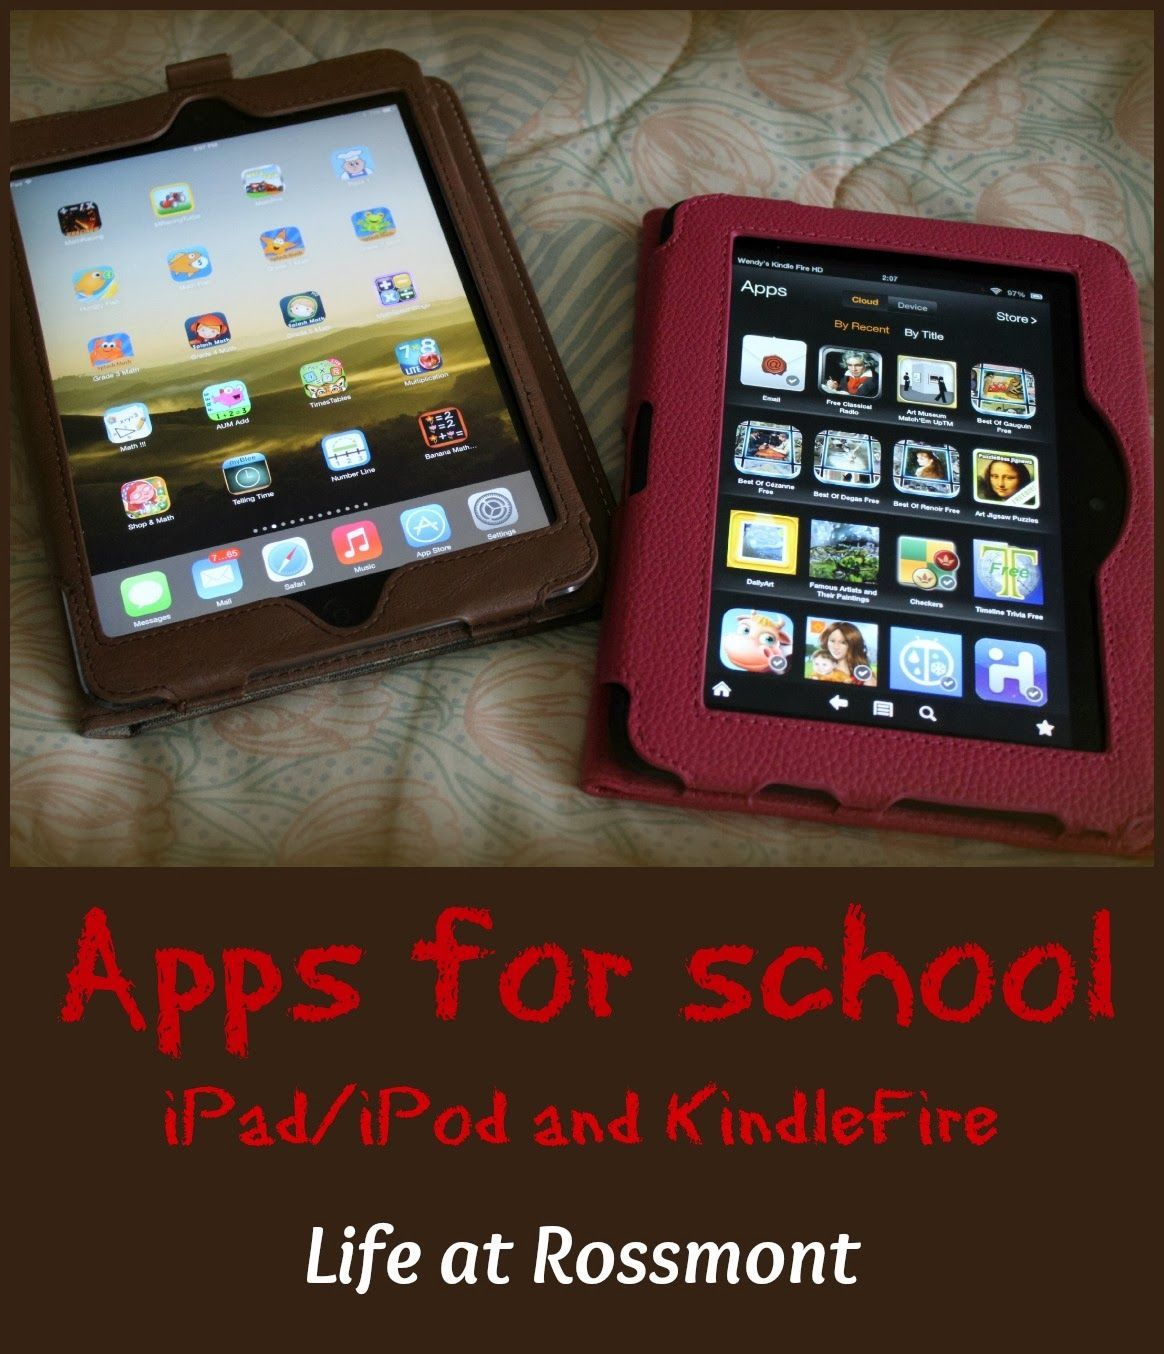 Apps for School (iPad and Kindle Fire) | Technology | Apps